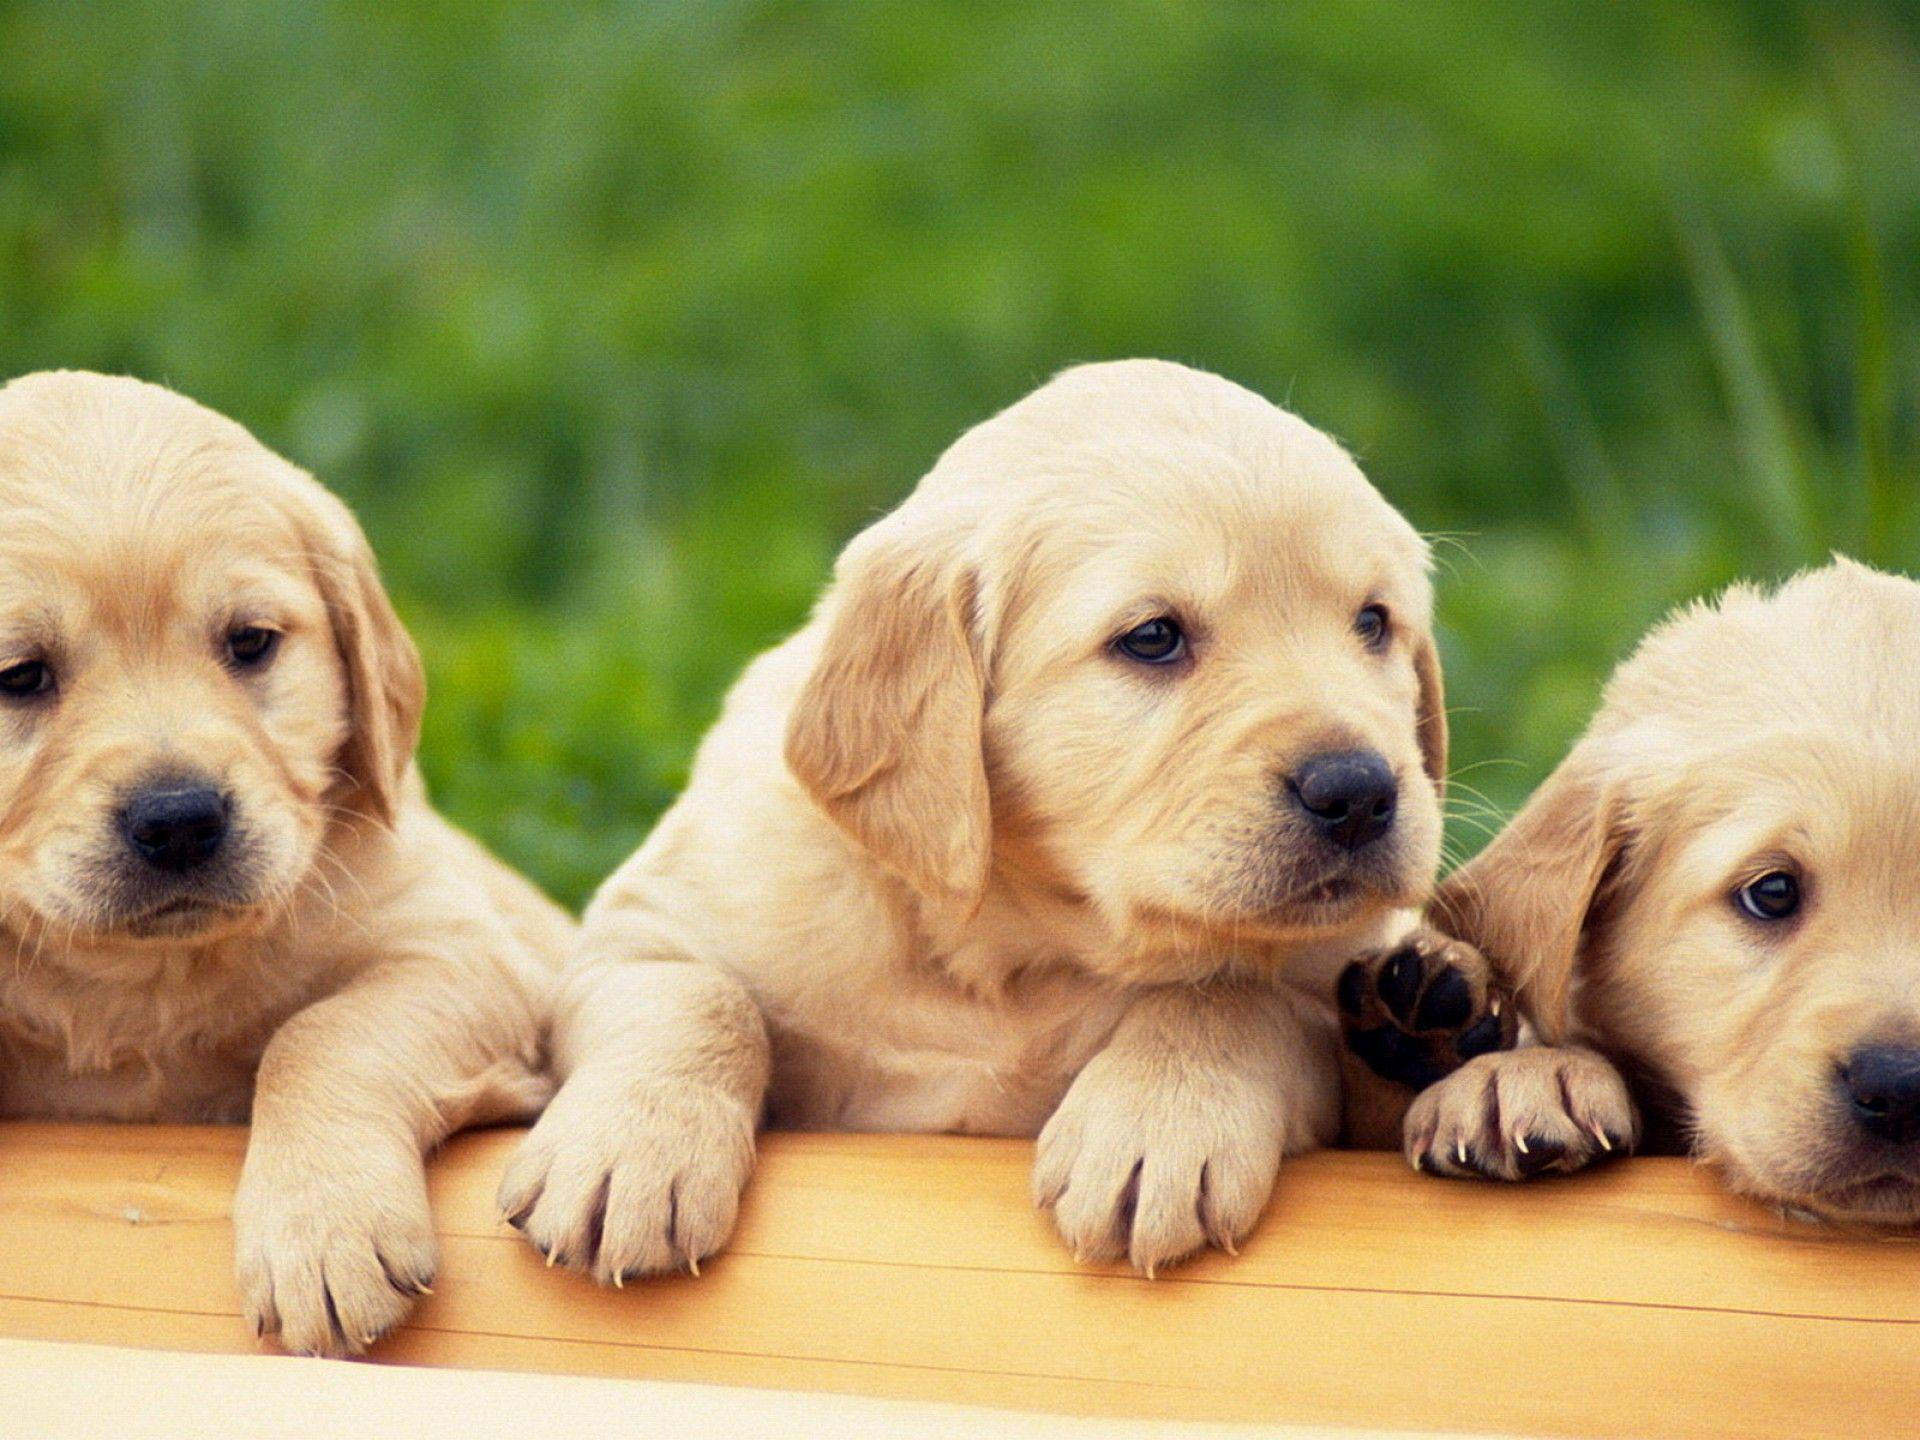 Free Puppy Dog Wallpapers